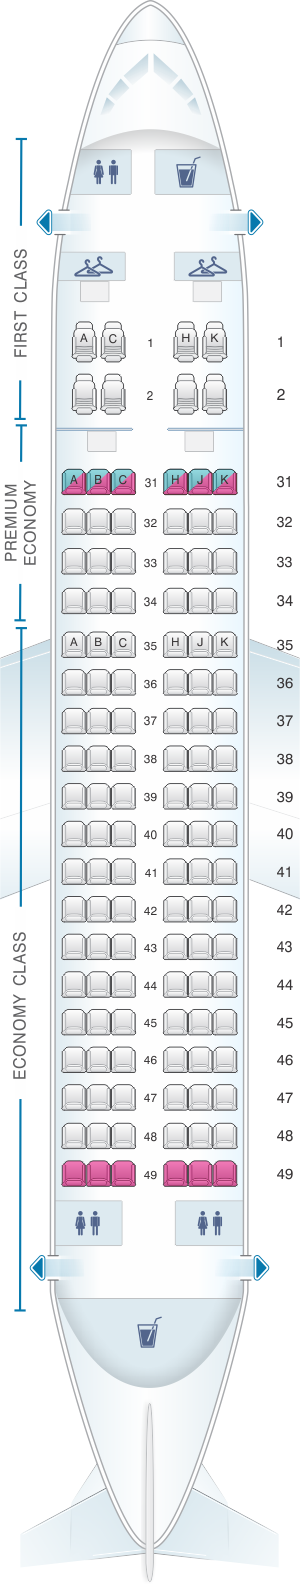 Seat map for China Southern Airlines Airbus A319